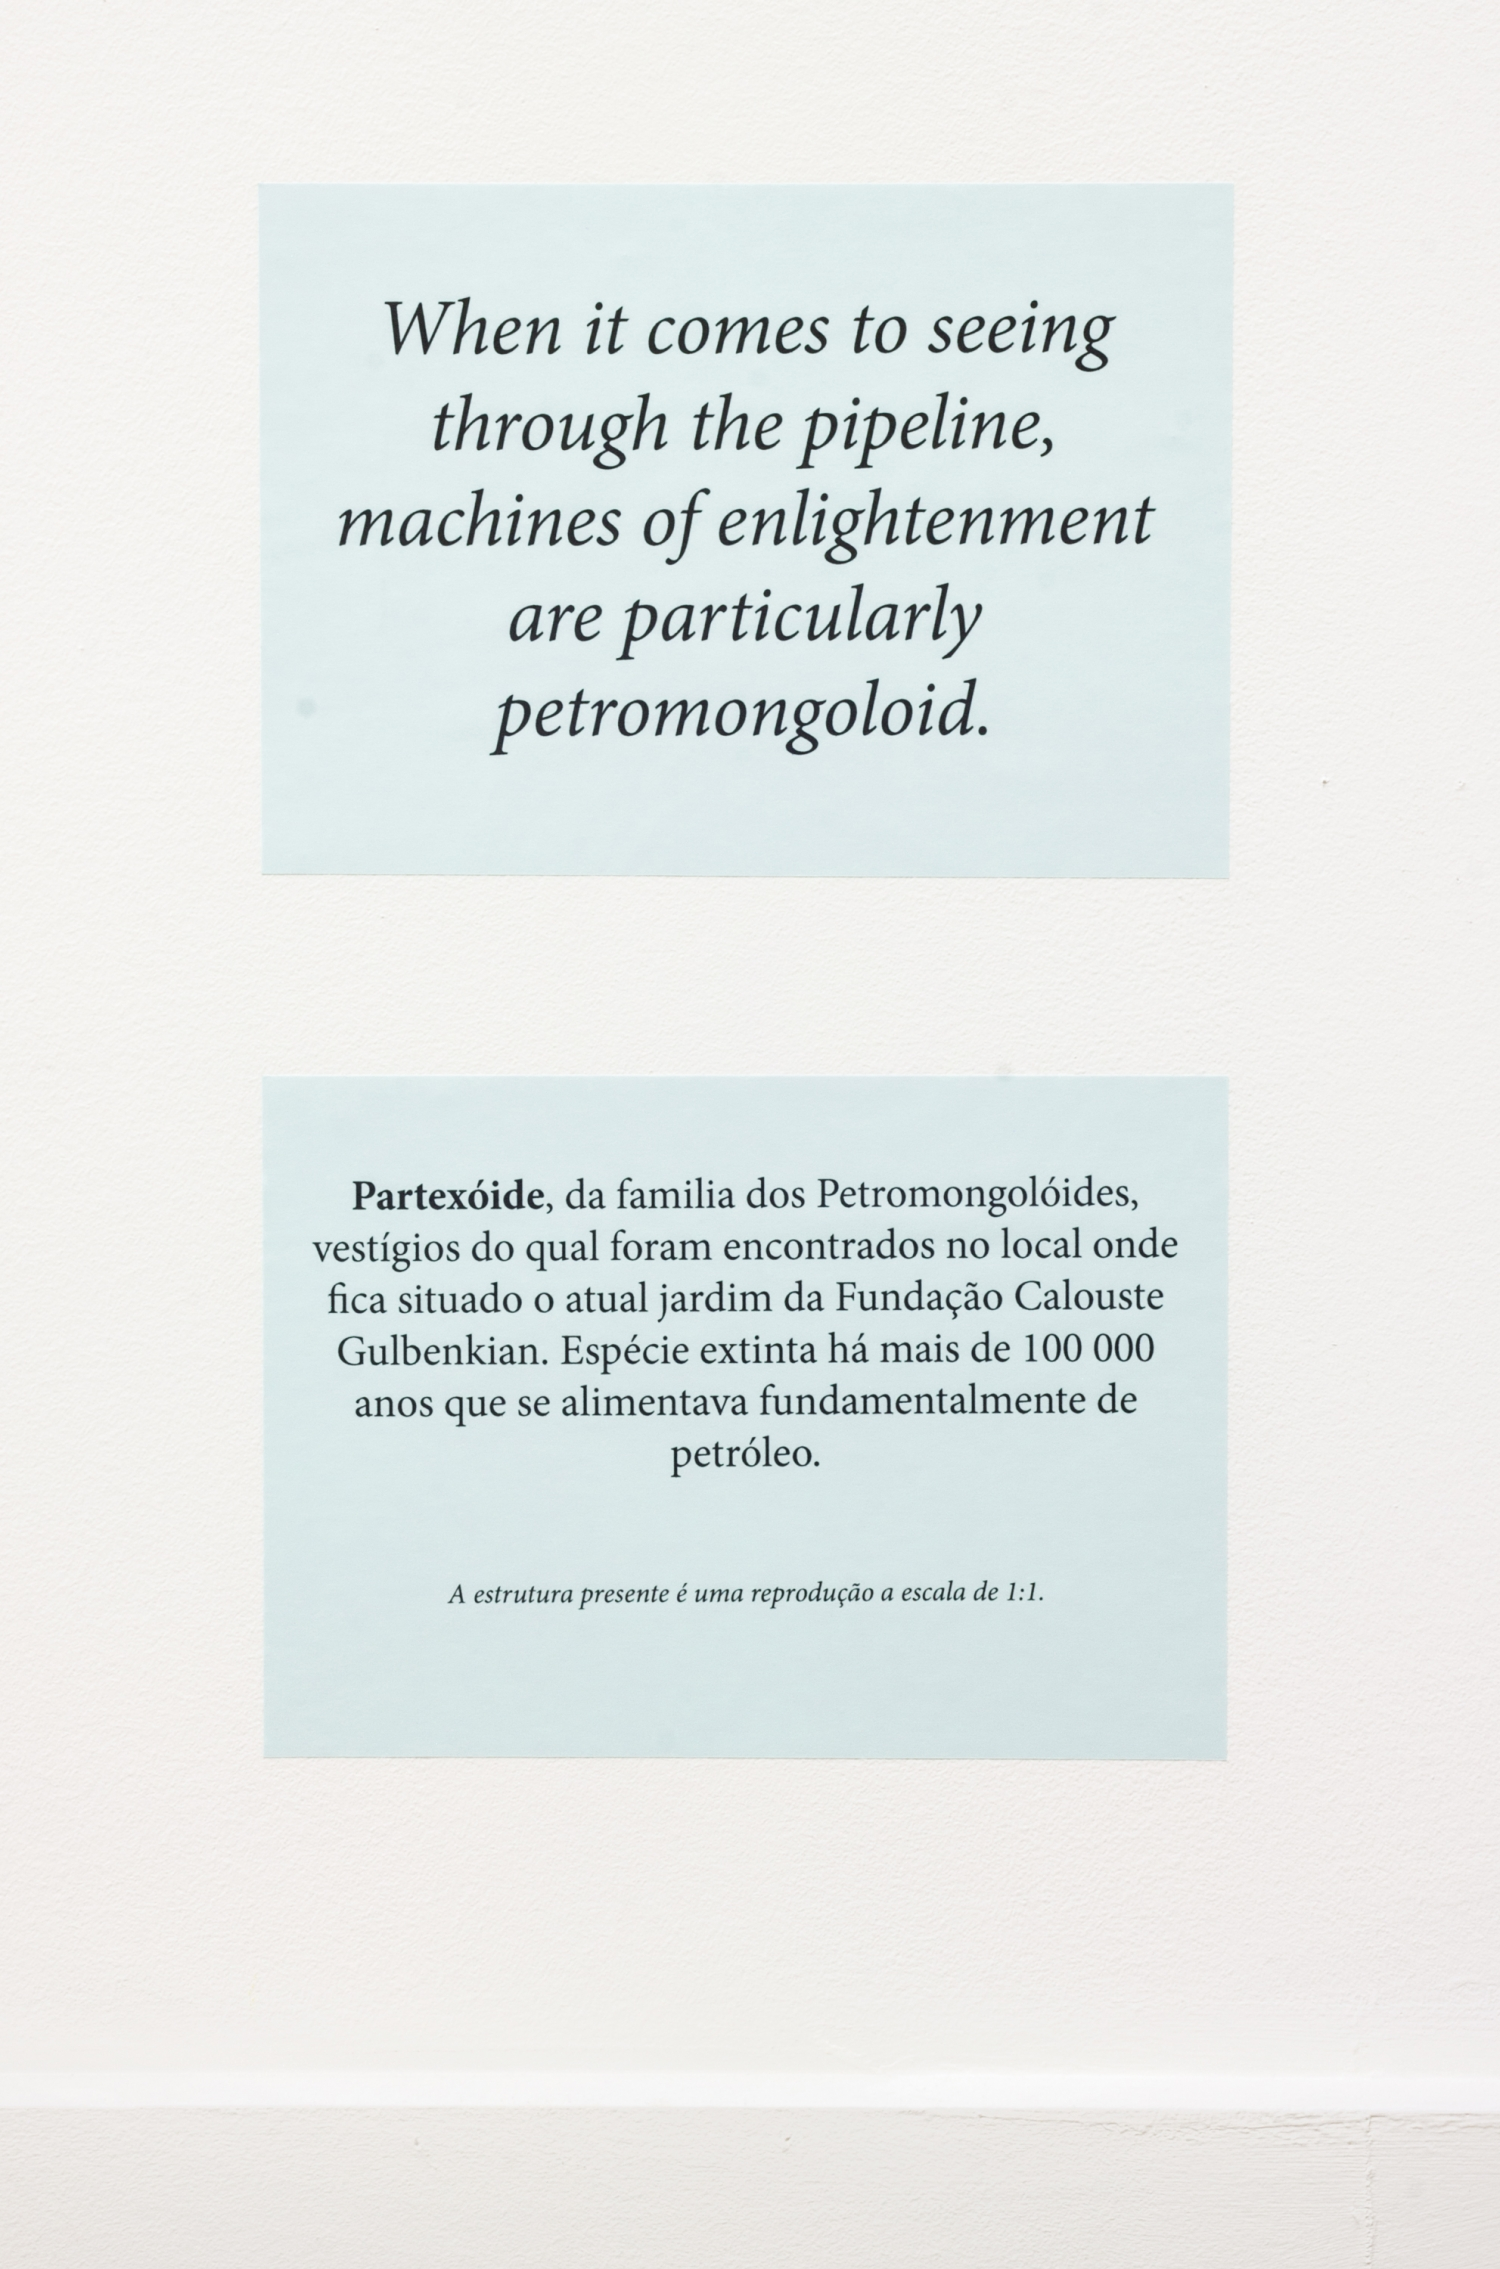 Partexoide was member of the family ofPetro-Mongoloidusremains of which  were found at the garden of Calouste Gulbenkian Foundation. Oil was the main  nourishment of this specie extinguished 100 000 years ago.